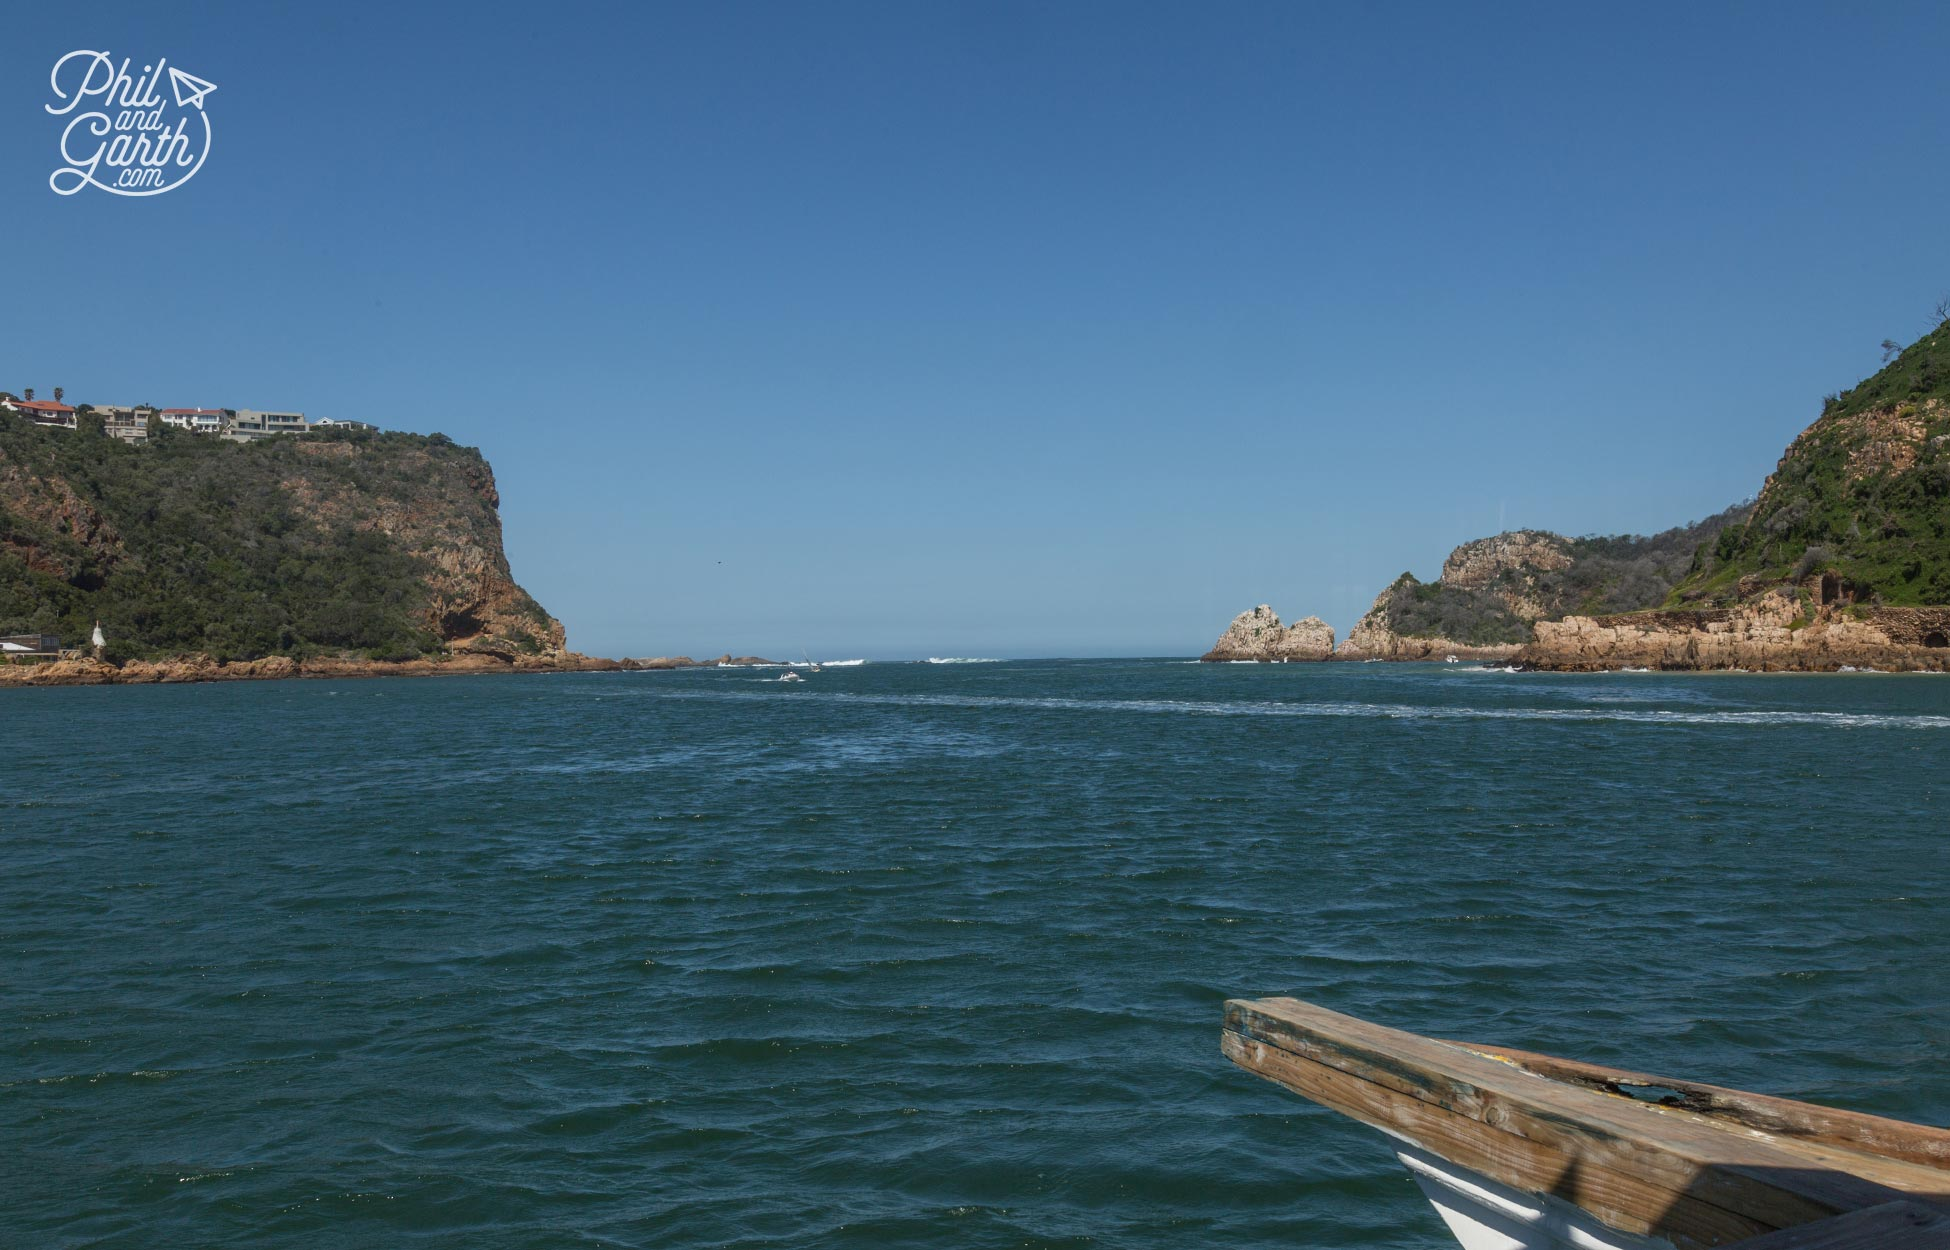 The Knysna Heads - 2 Sandstone cliffs protecting the lagoon from the ocean behind